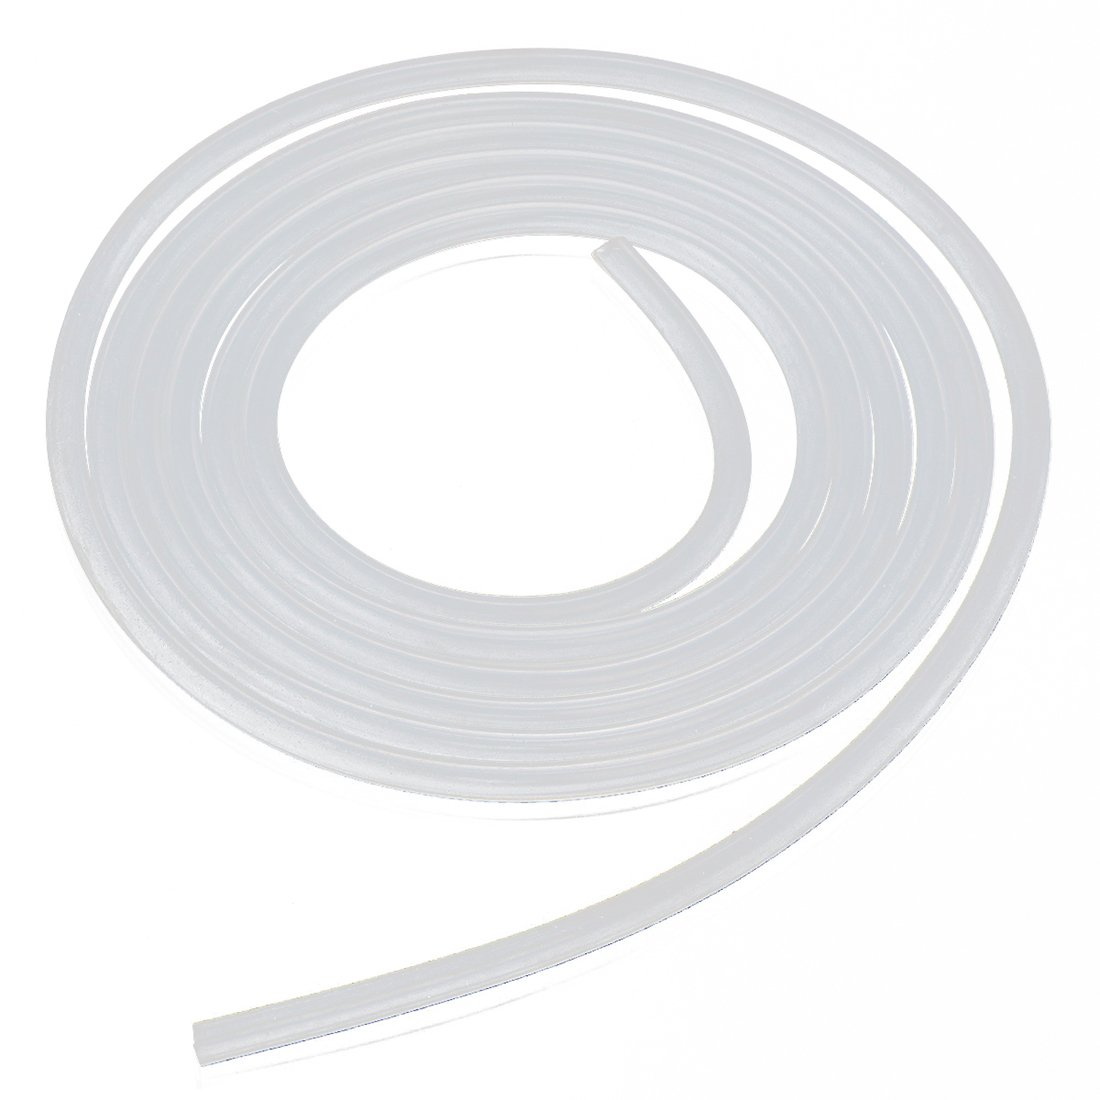 silicone tube - TOOGOO(R)2 meter silicone tube silicone tube pressure hose highly flexible 2 3mm